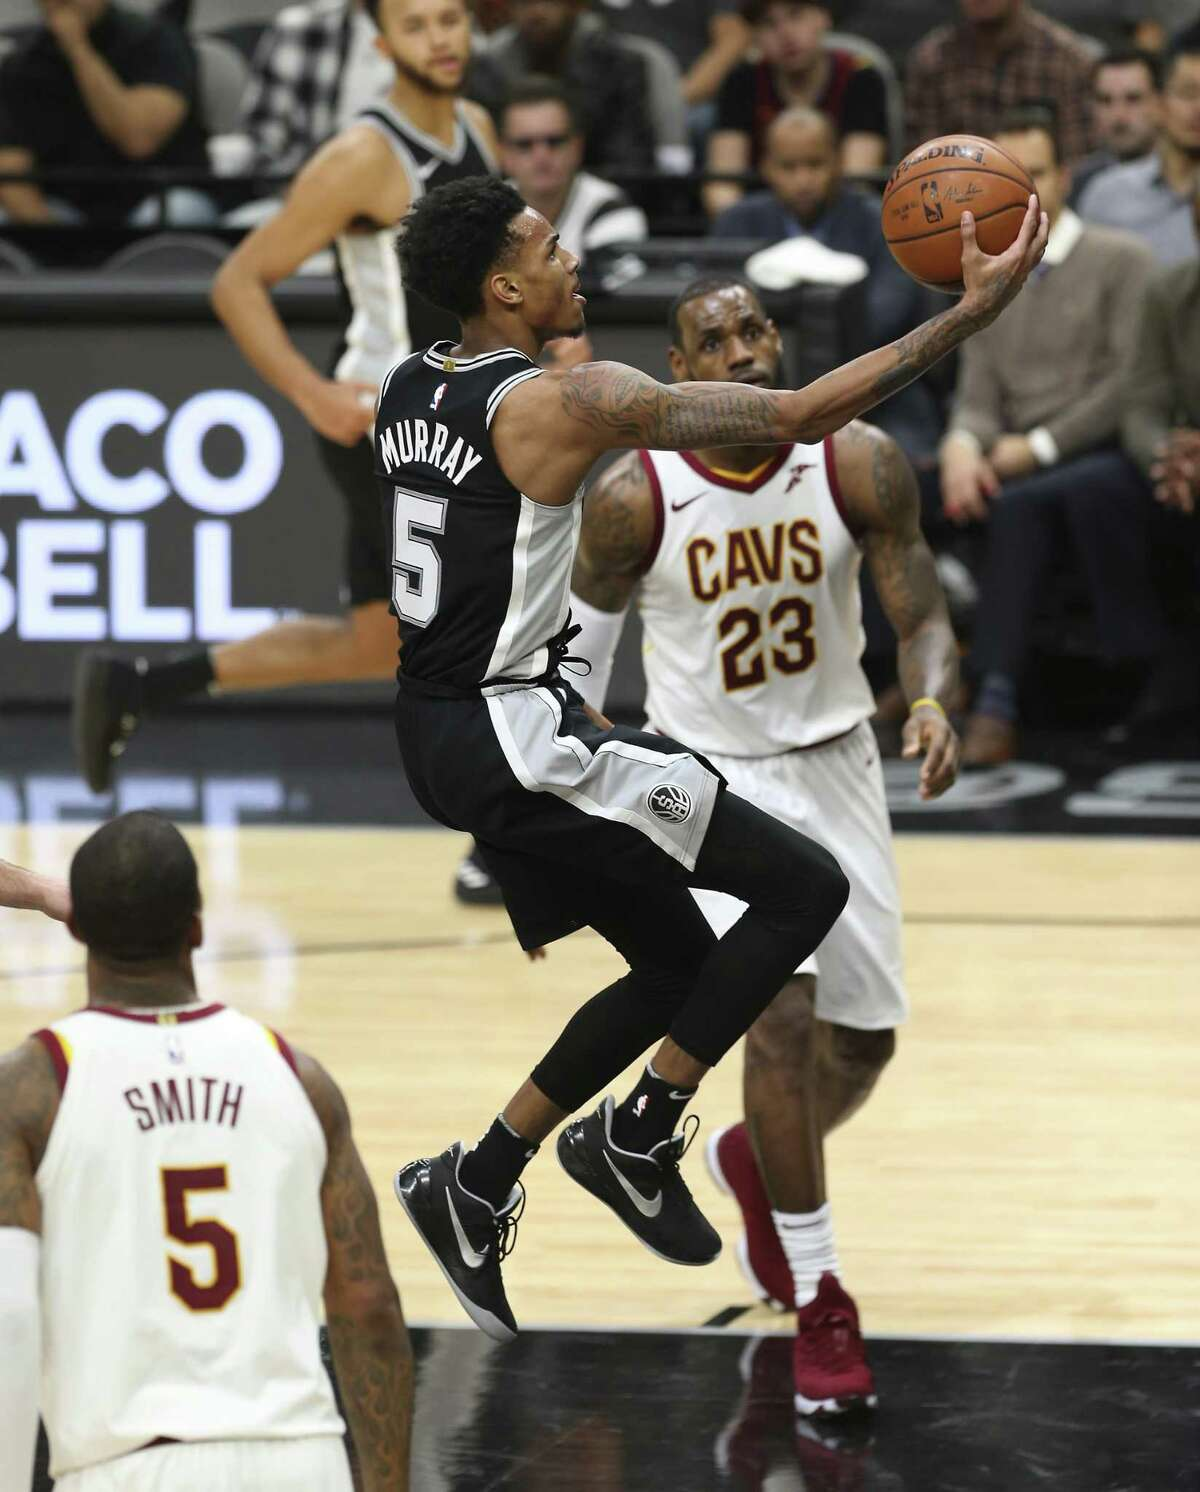 Spurs' Dejounte Murray (05) gets a layup against the Cleveland Cavaliers at the AT&T Center on Tuesday, Jan. 23, 2018. (Kin Man Hui/San Antonio Express-News)